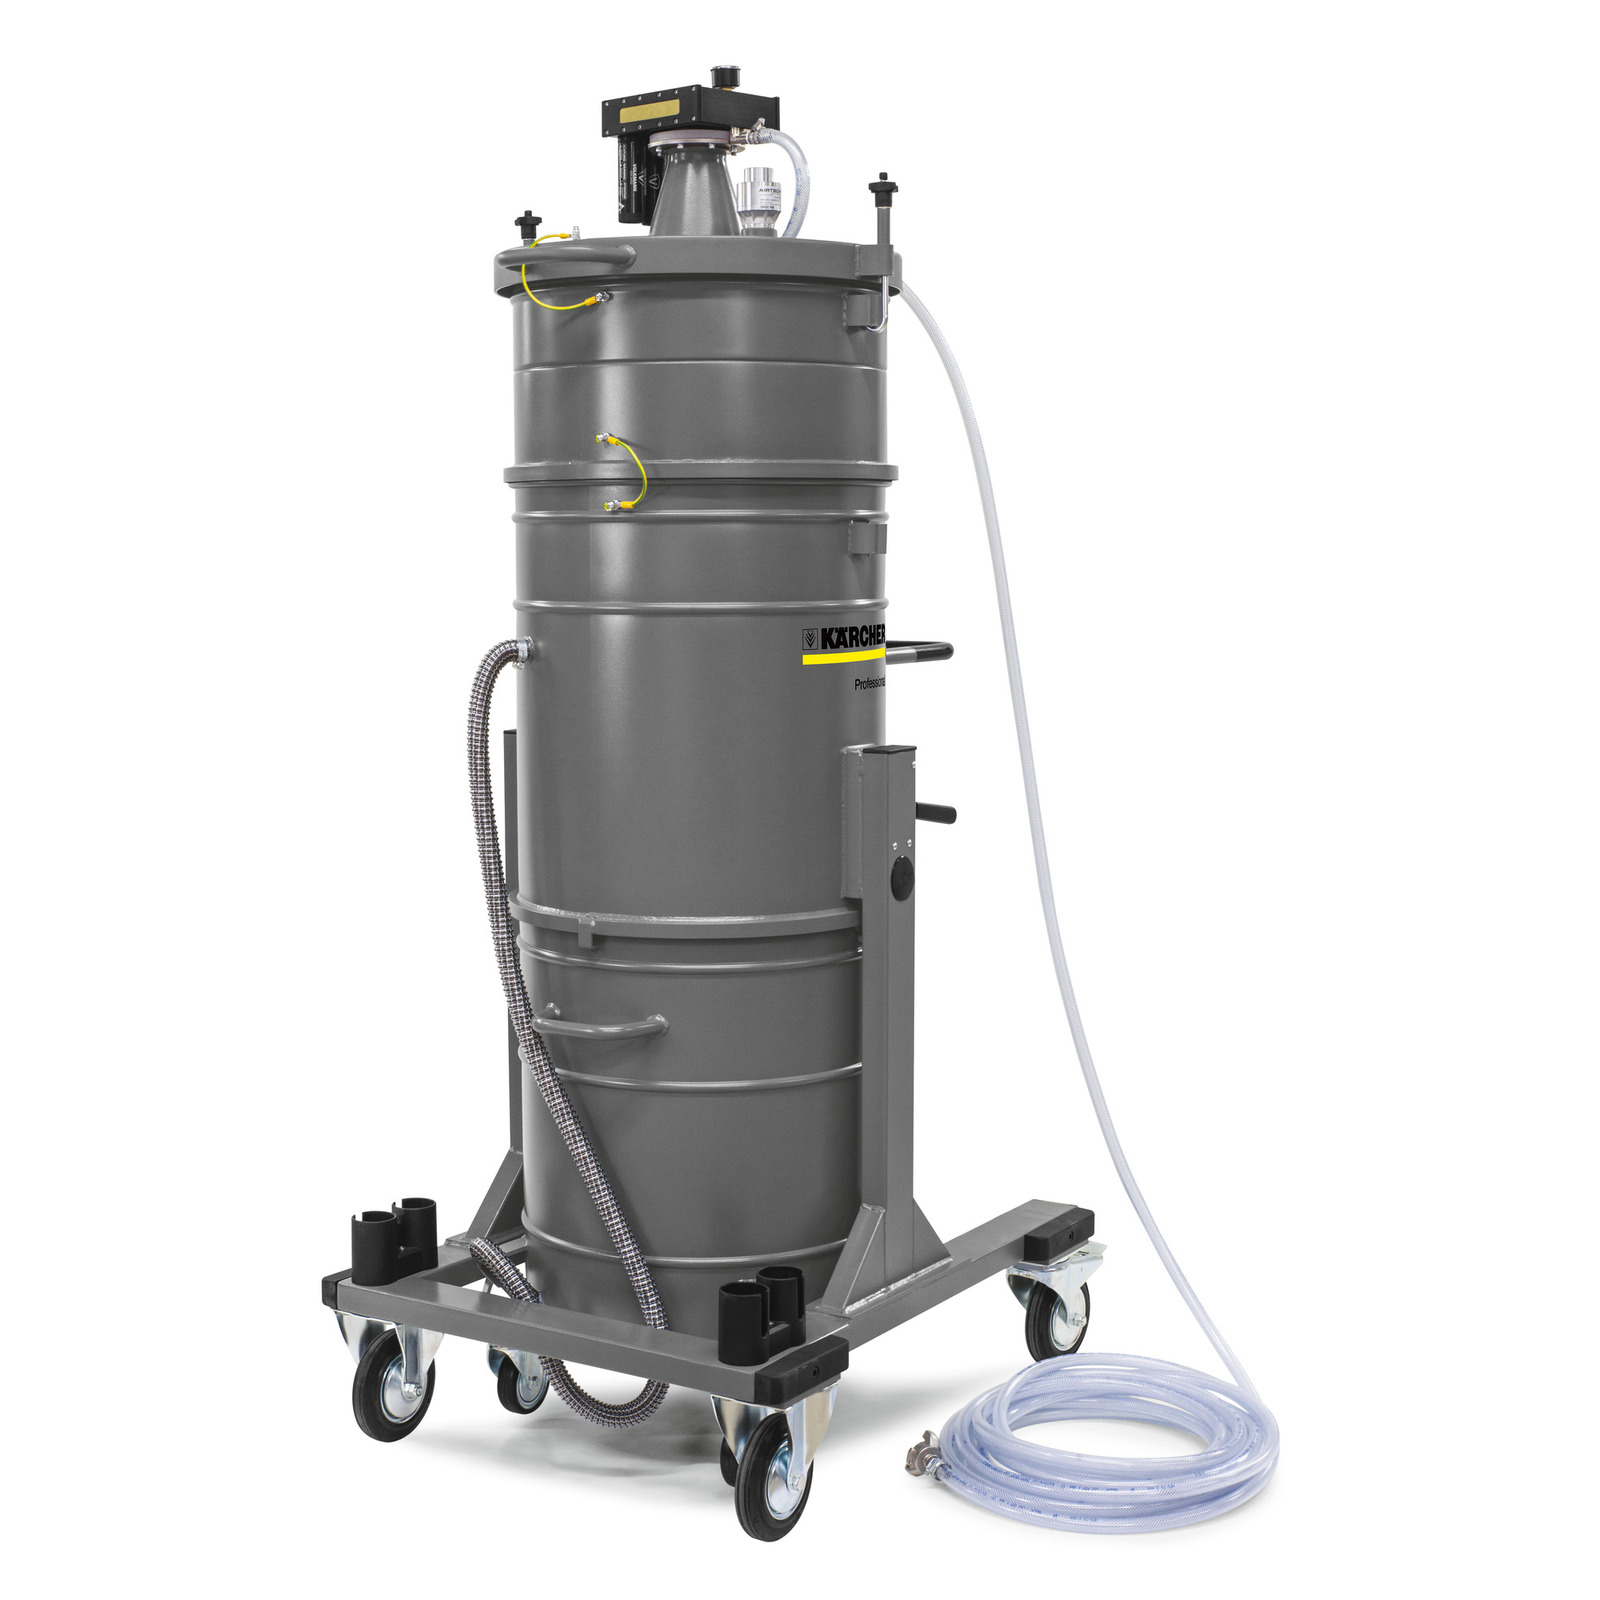 IVR 100/16-Pp Industrial Vacuum Cleaner